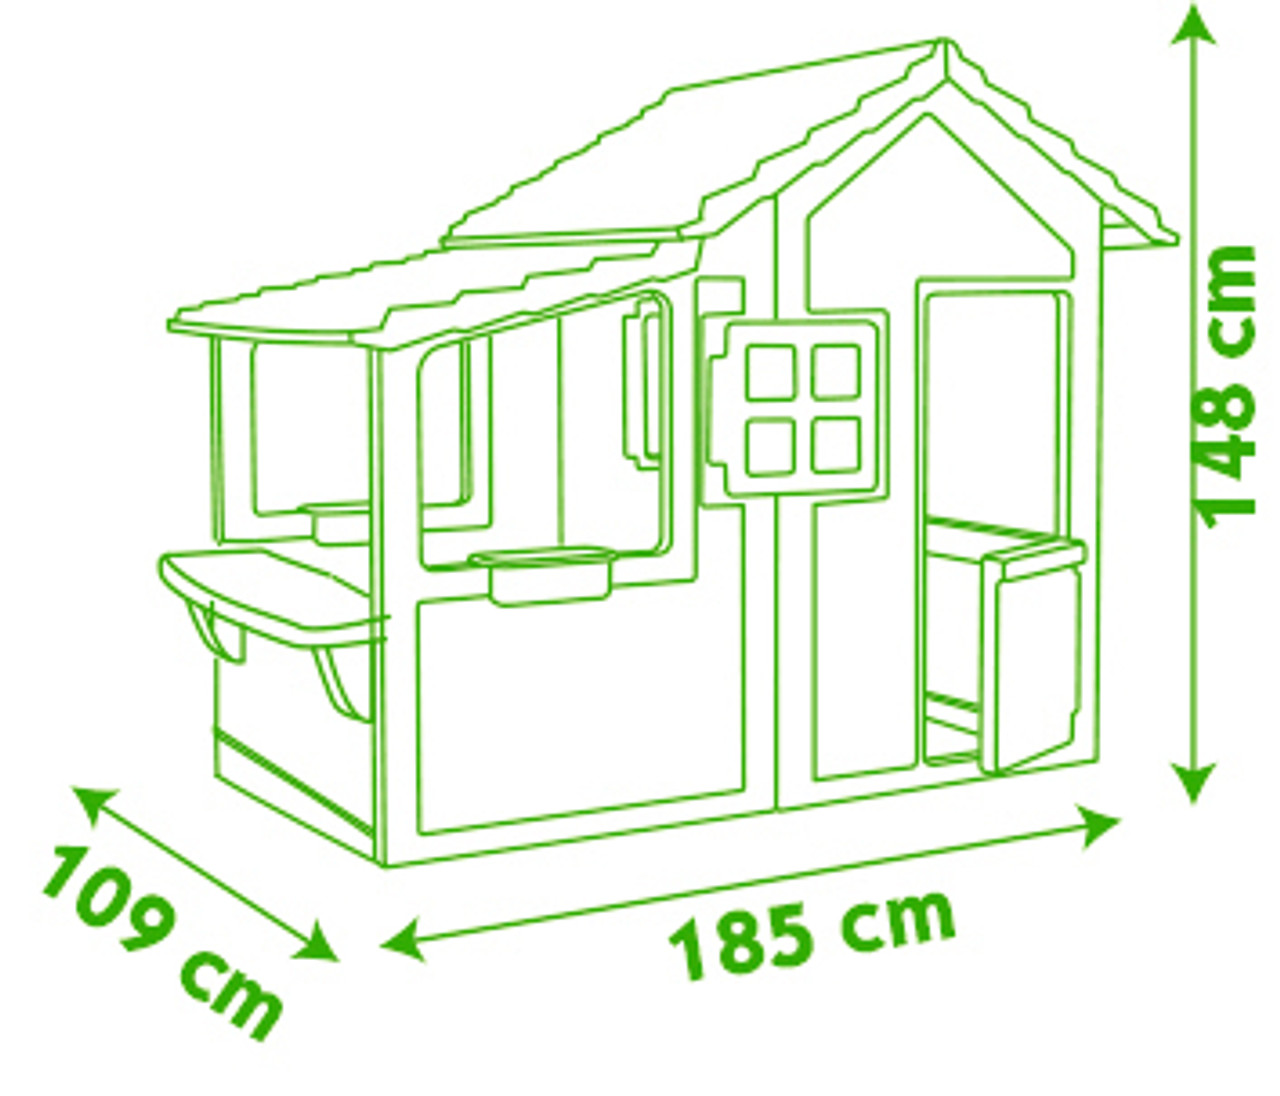 Dimensions of the Smoby Floralie Playhouse